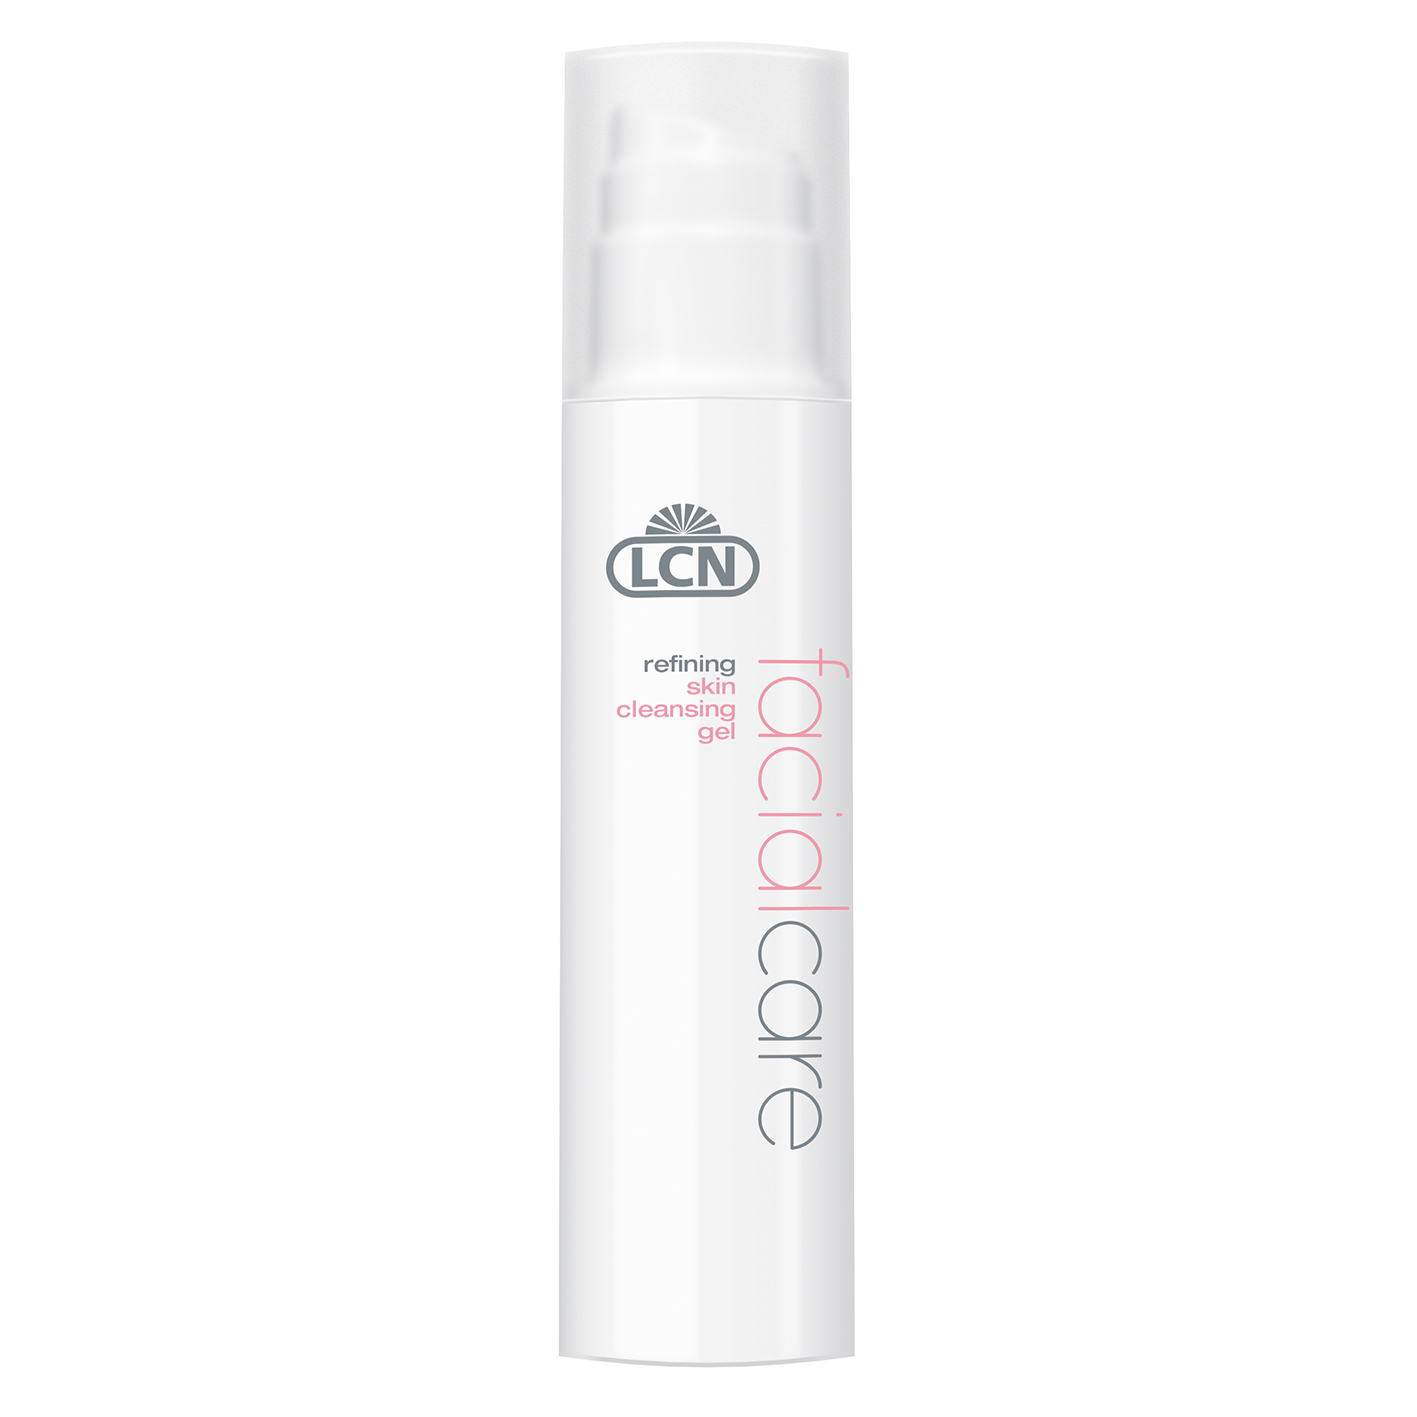 Refining Skin Cleansing Gel